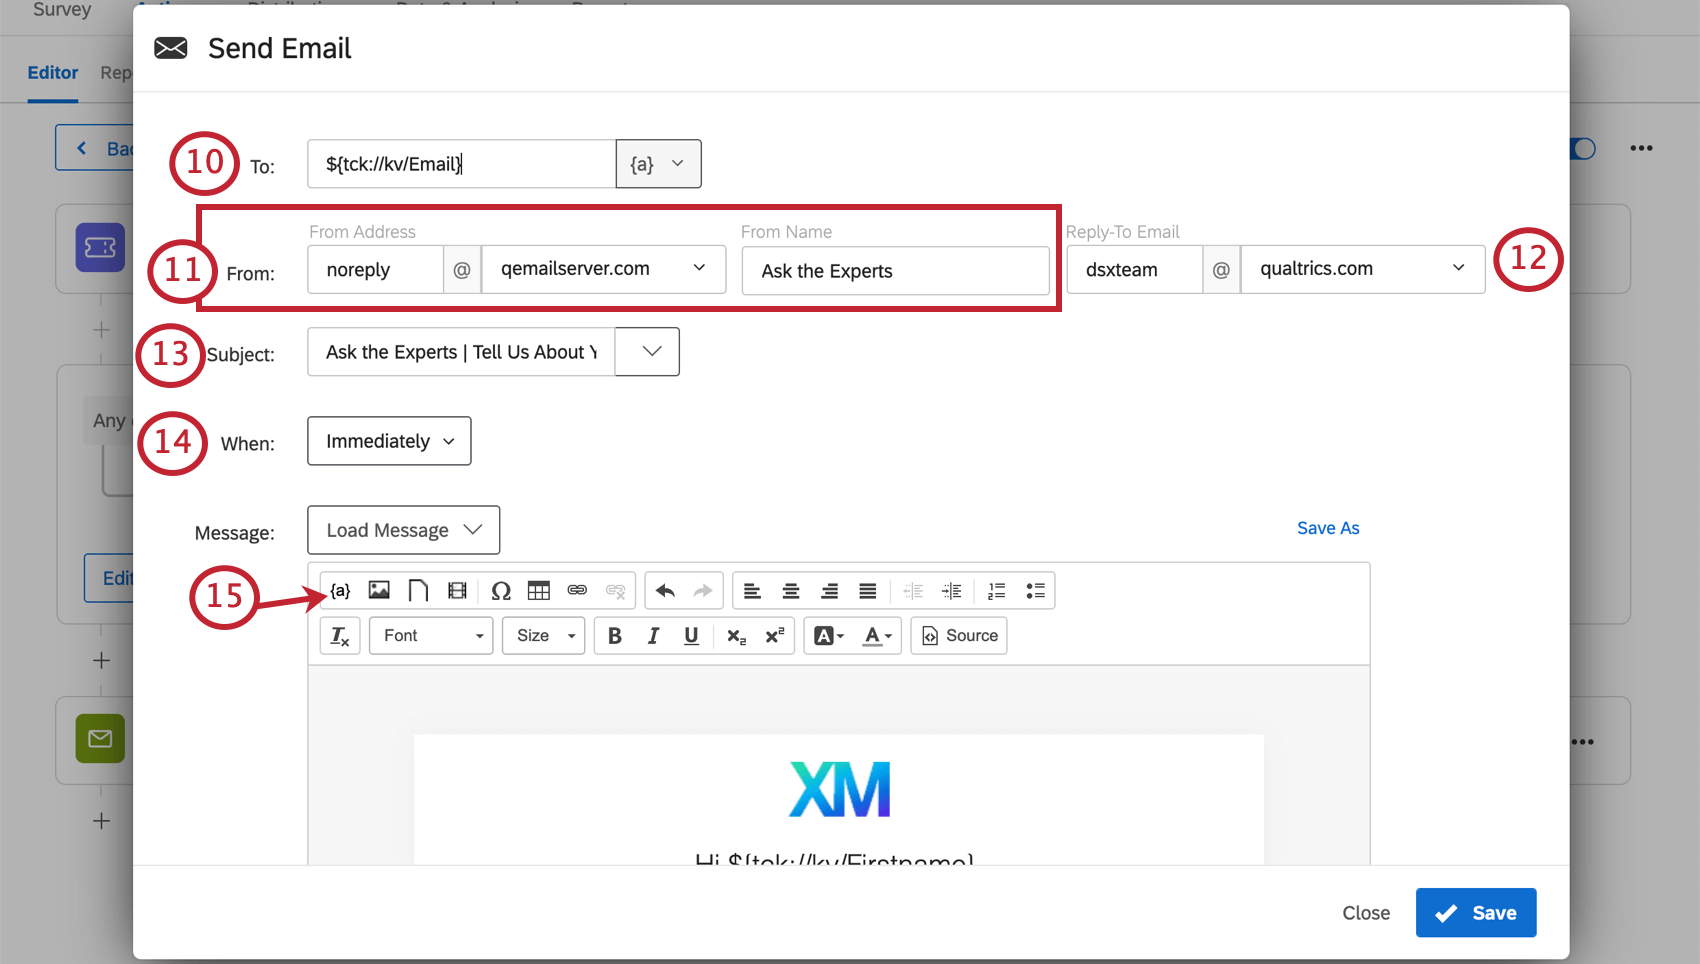 Image of an email task being configured